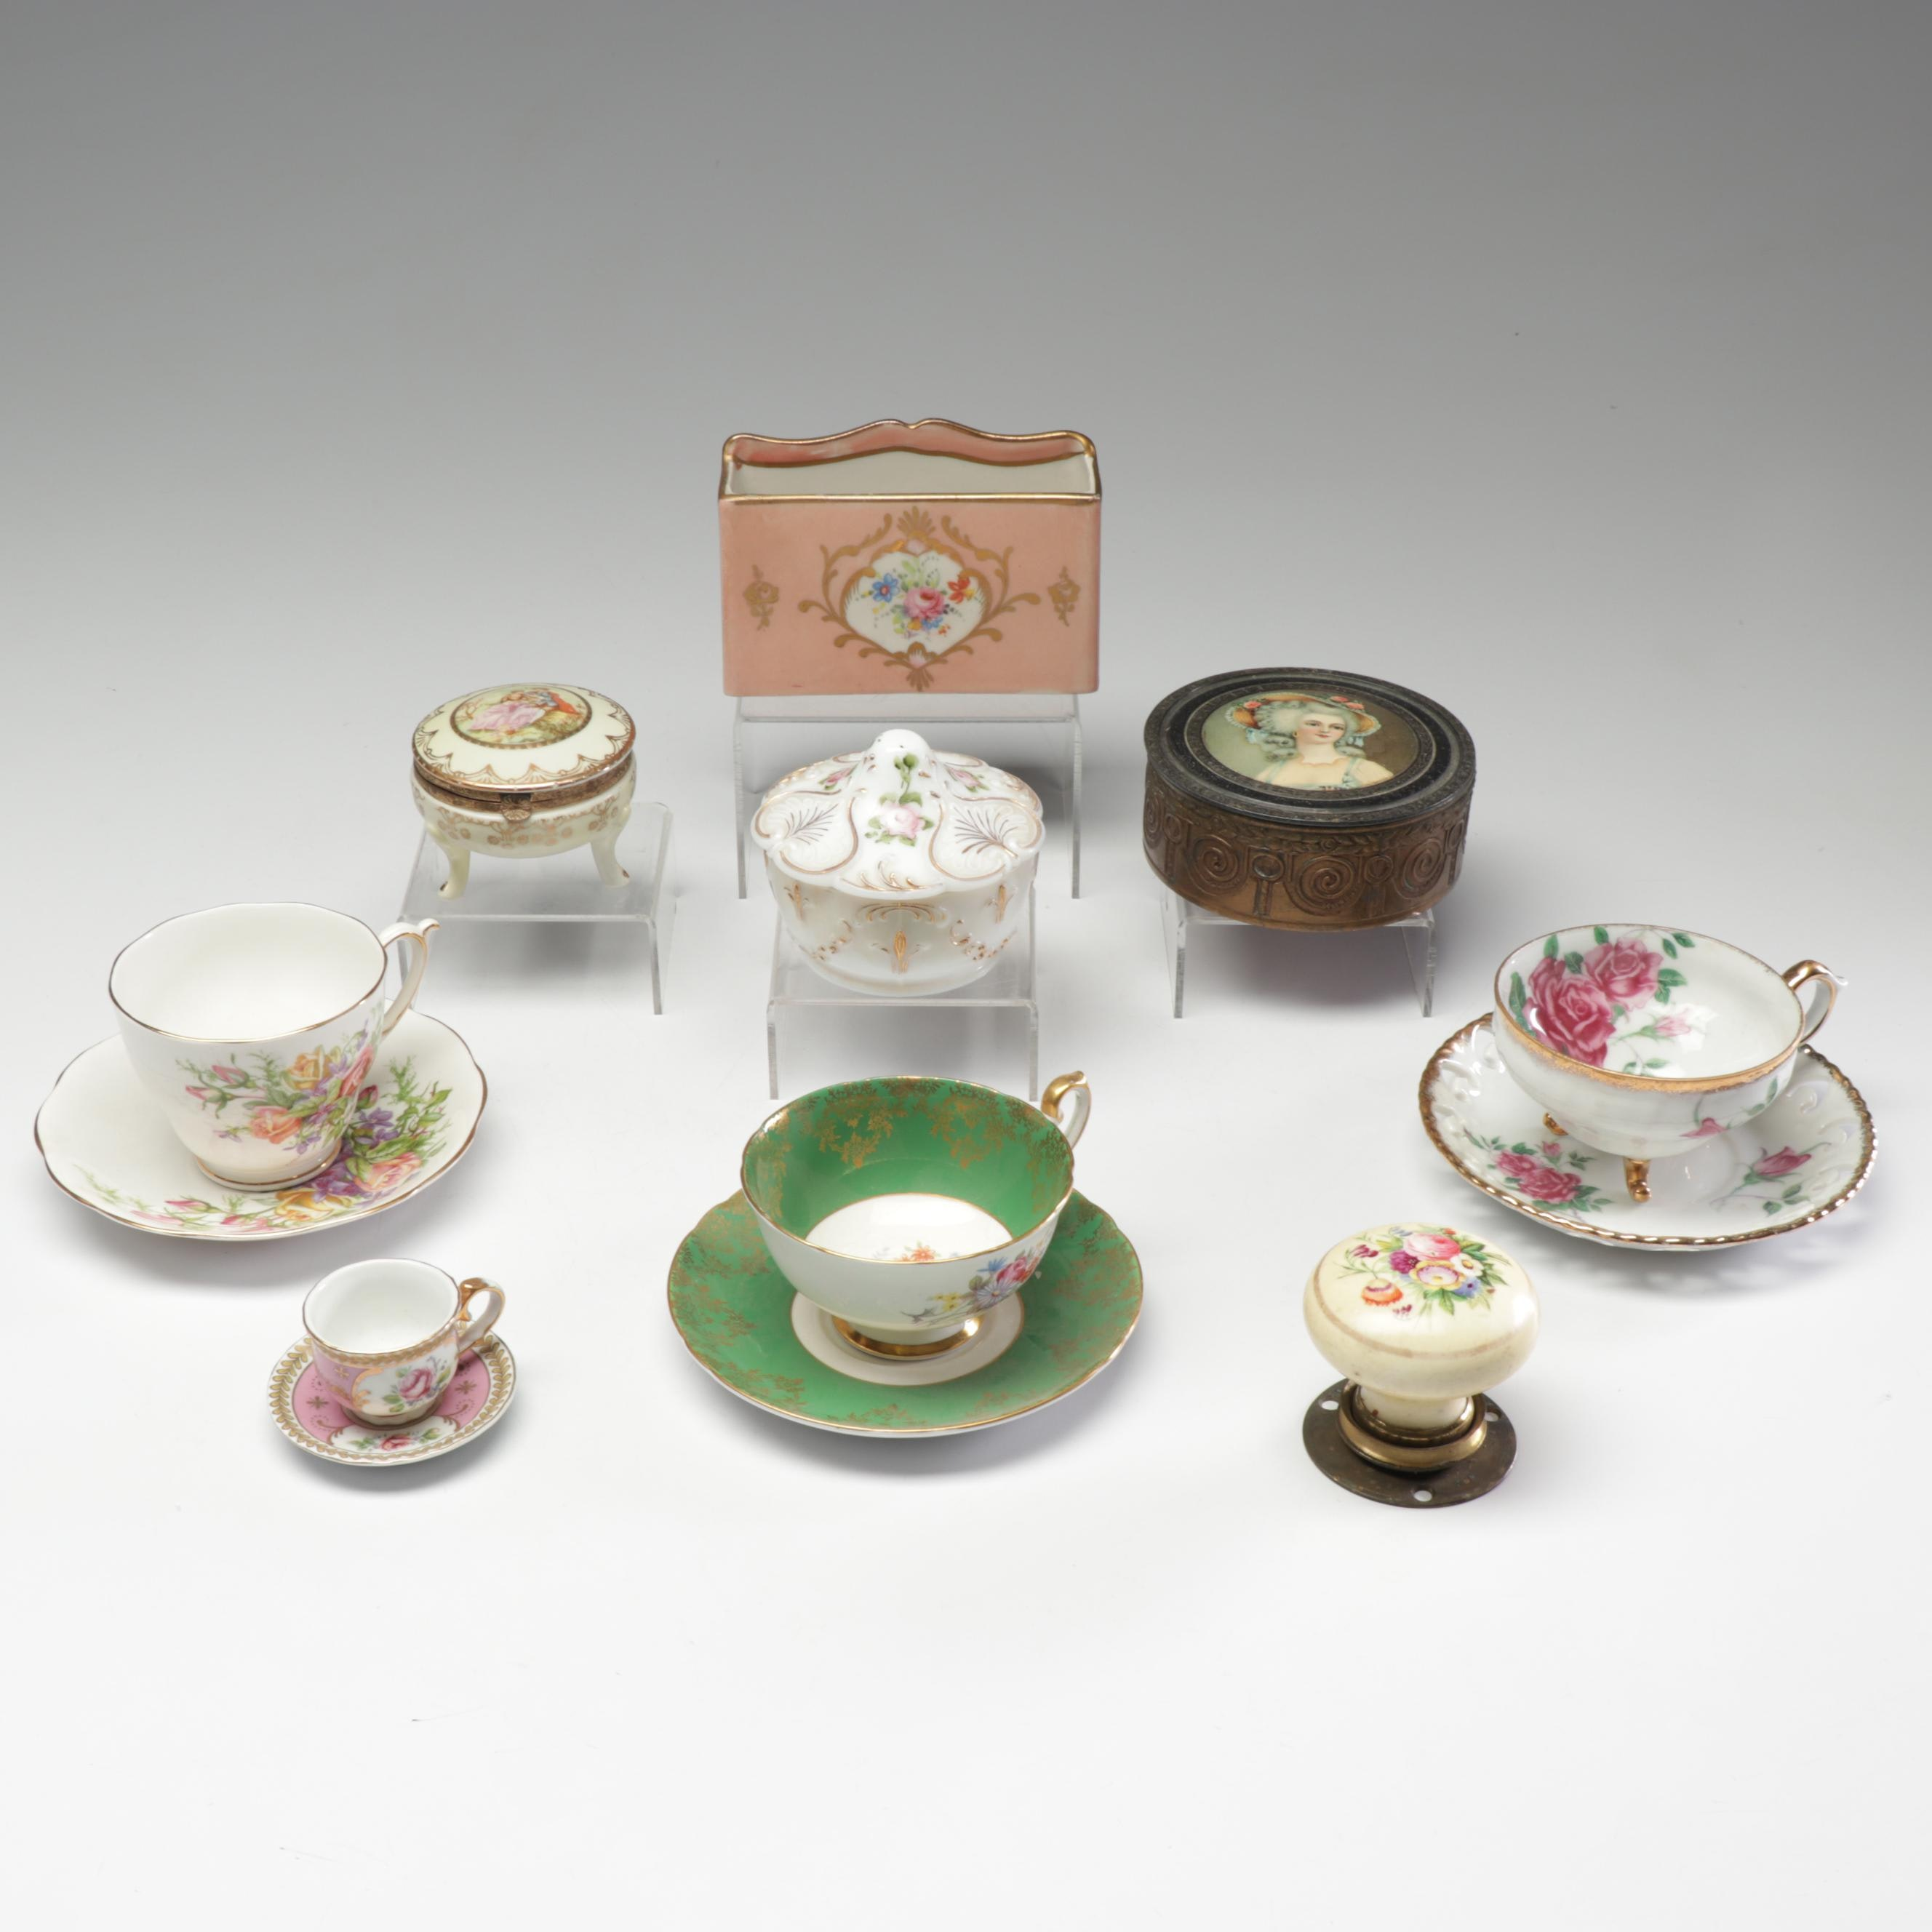 Gilt Ceramic Tea Settings and Vanity Home Accents